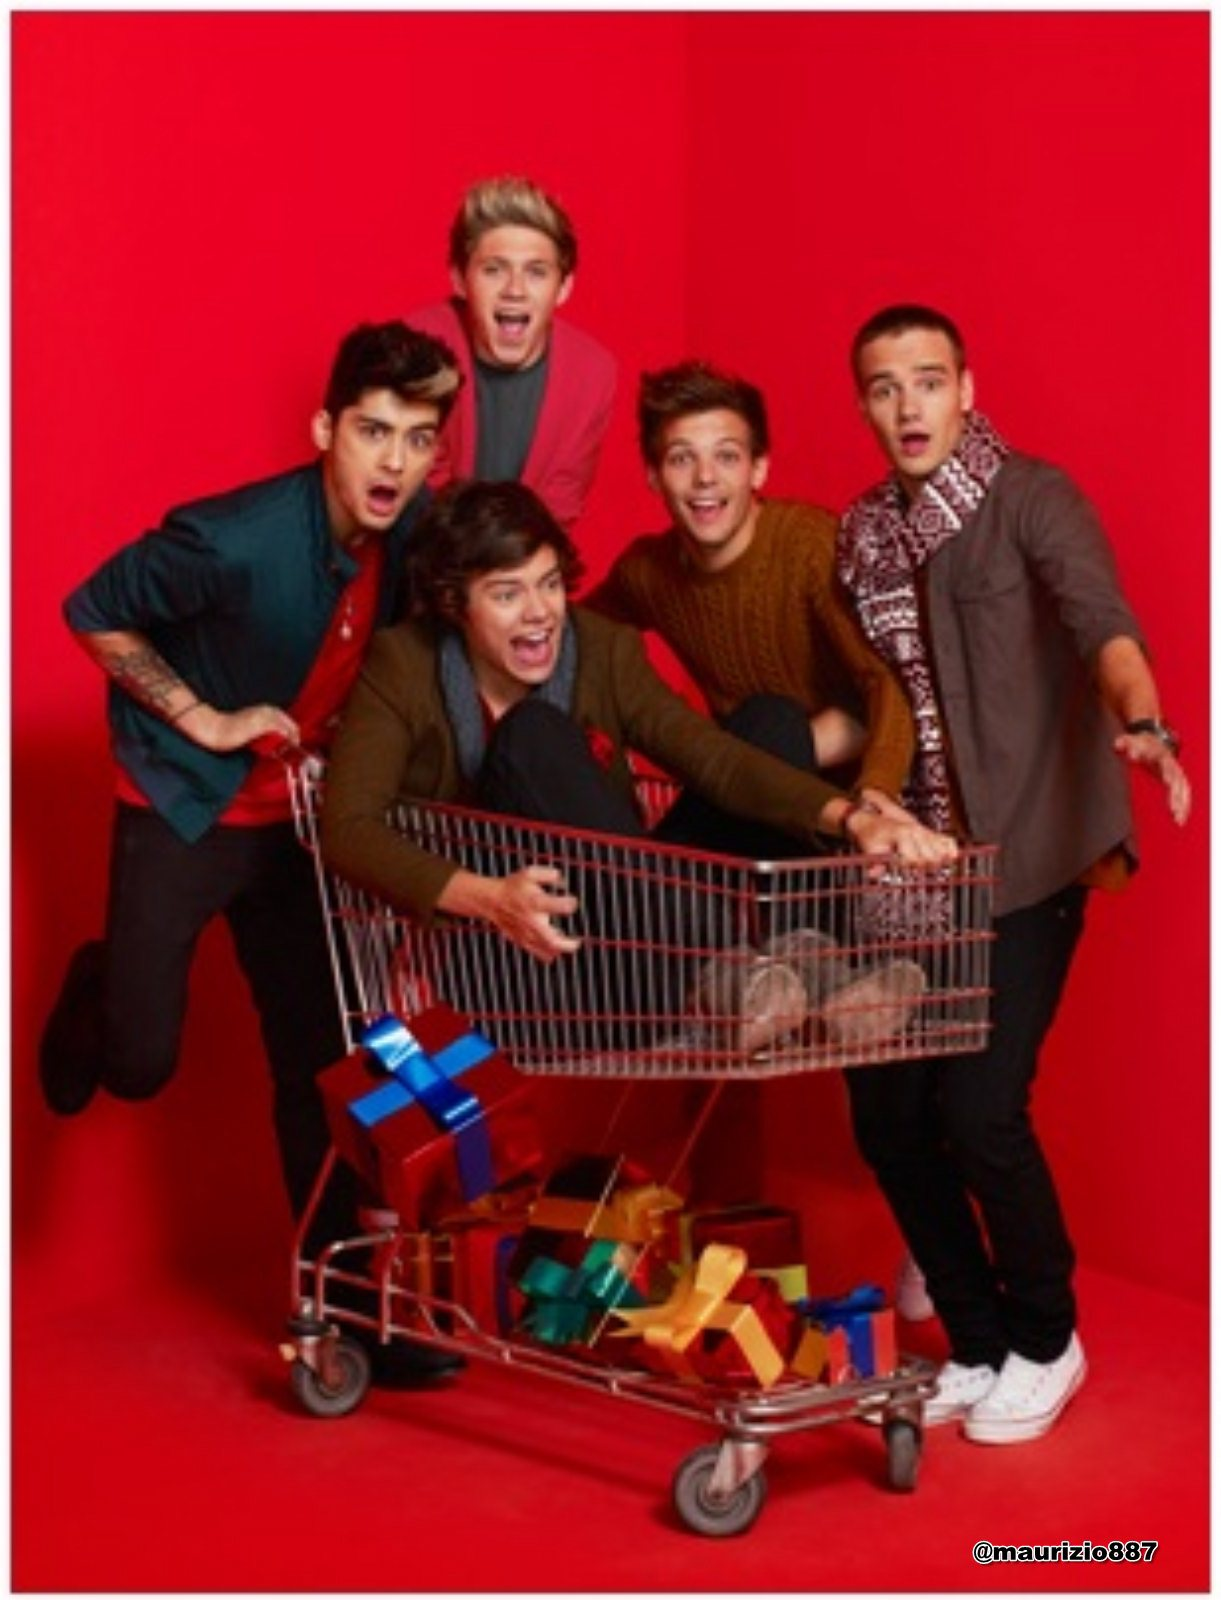 http://images6.fanpop.com/image/photos/32700000/one-direction-New-Christmas-photoshoot-2012-one-direction-32780453-1221-1600.jpg